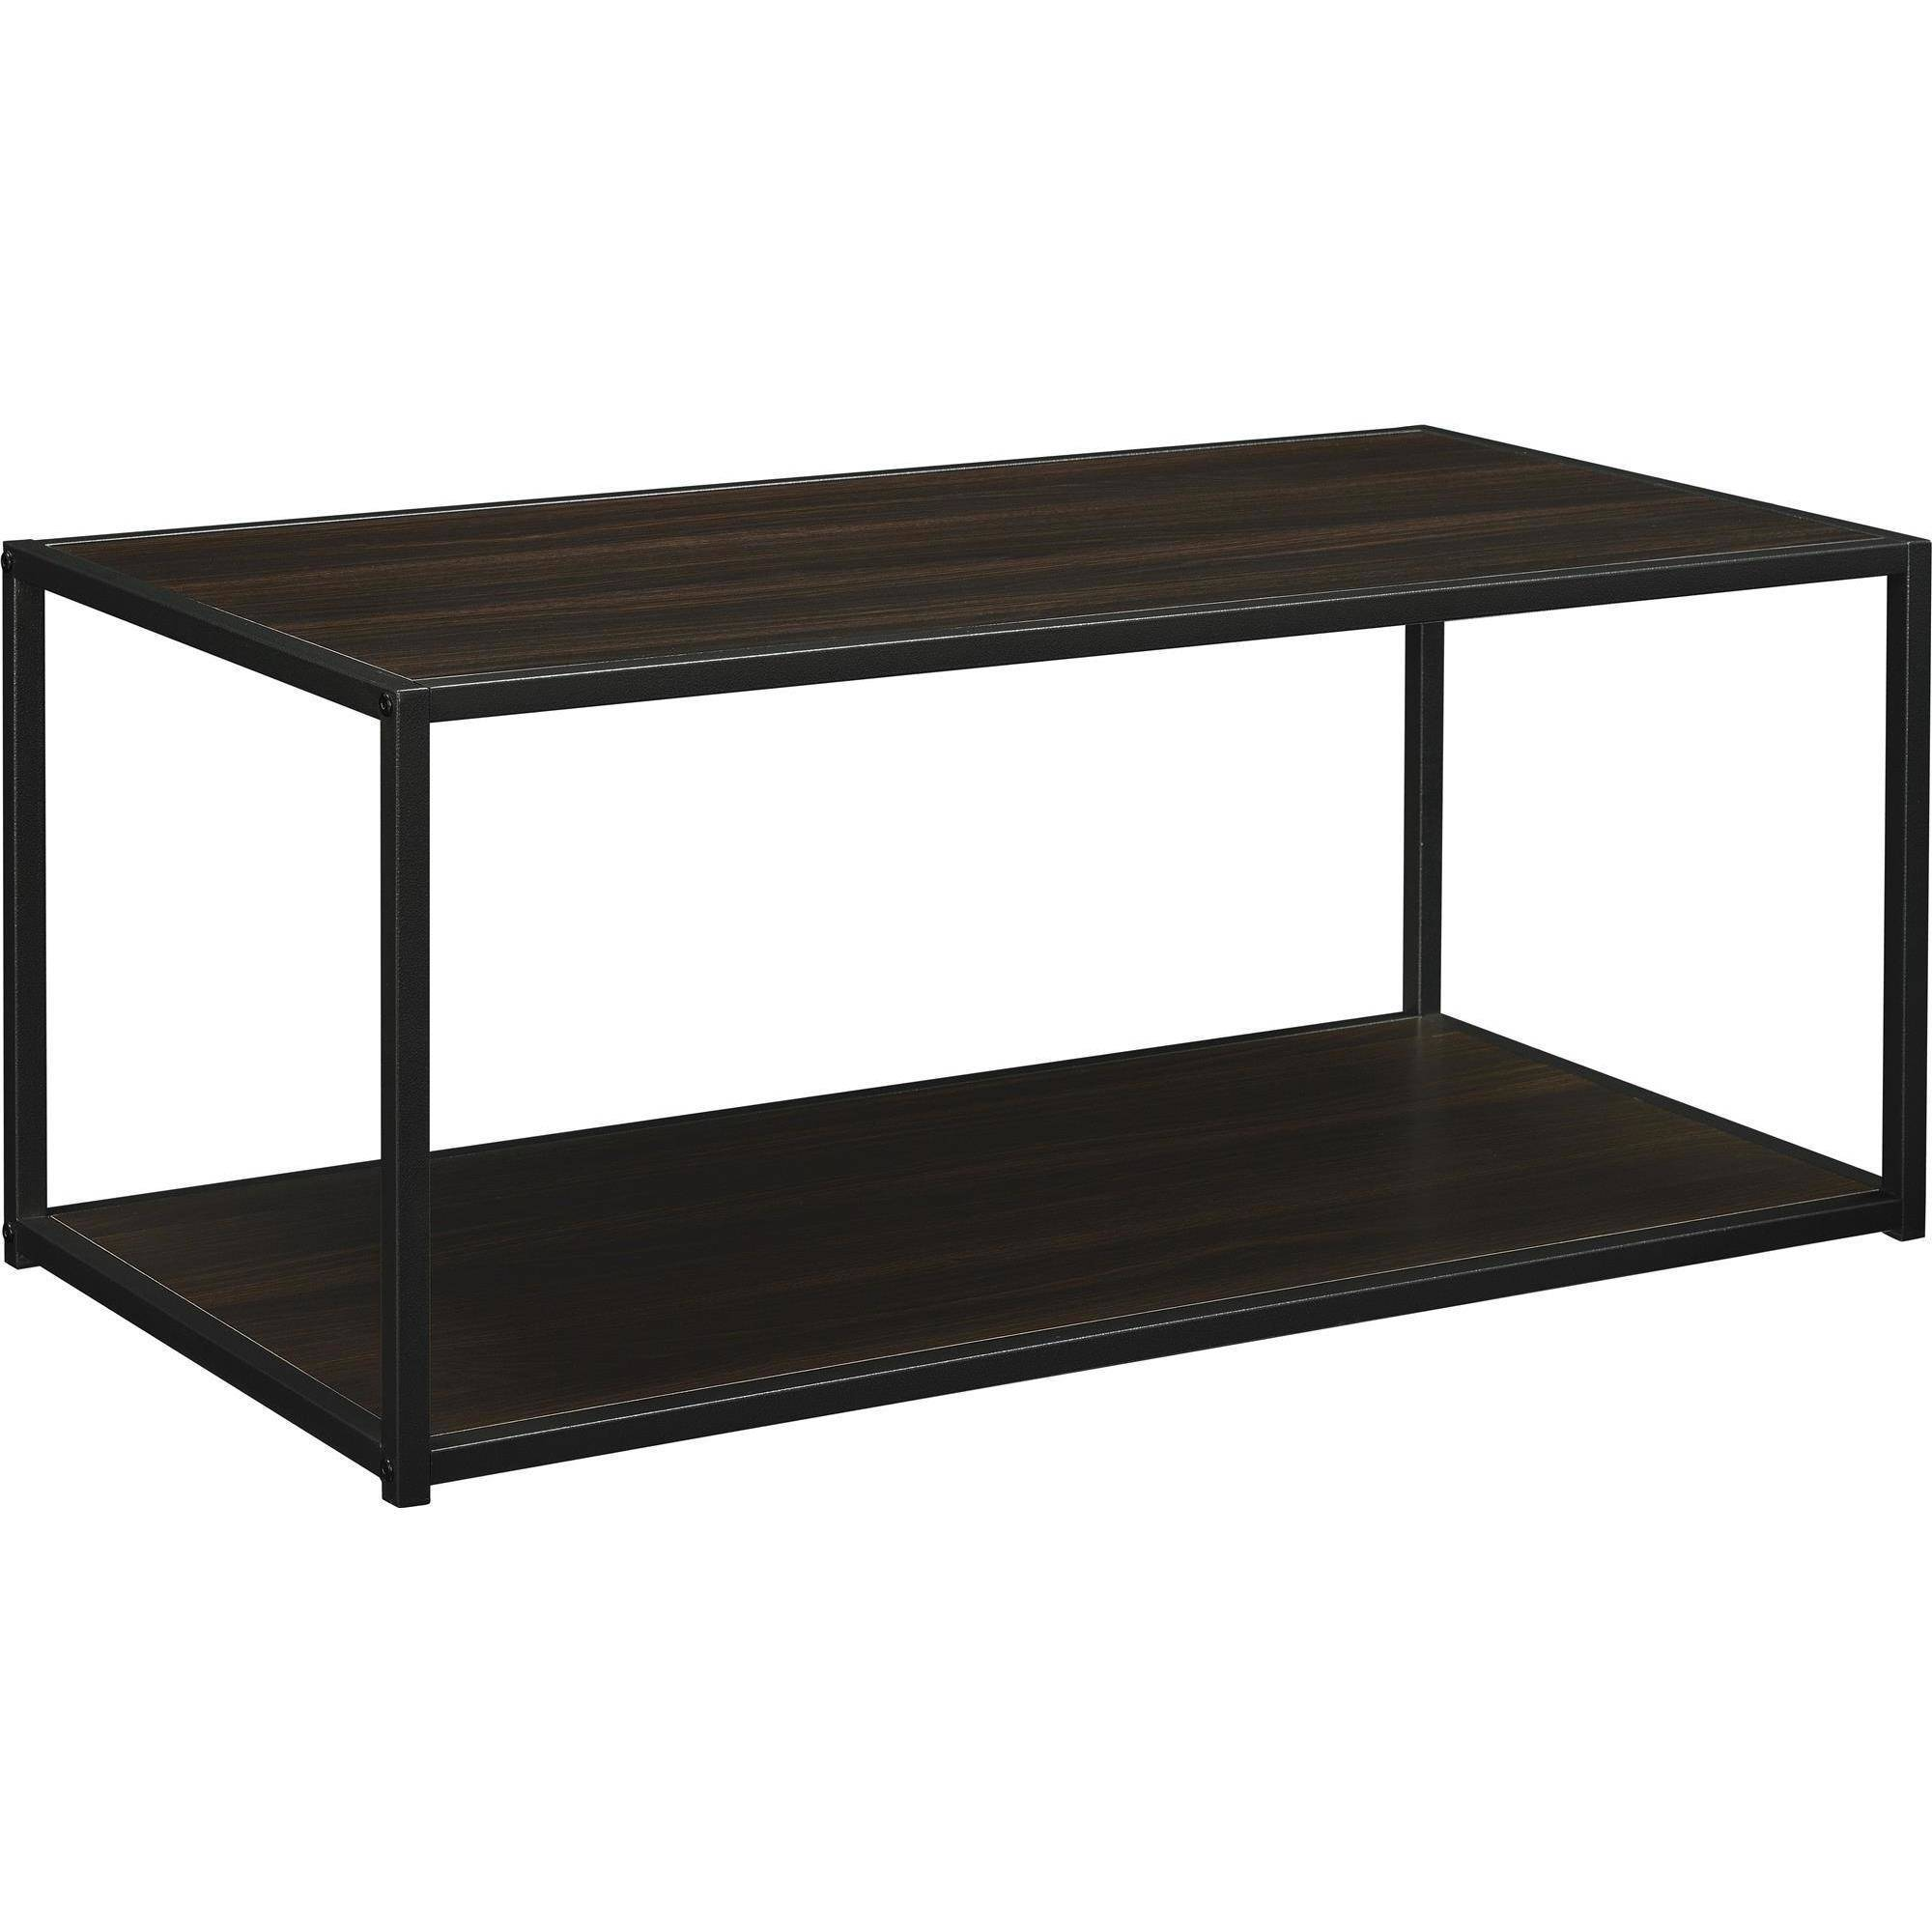 Elegant Ameriwood Home Canton Coffee Table With Metal Frame, Distressed Gray Oak    Walmart.com